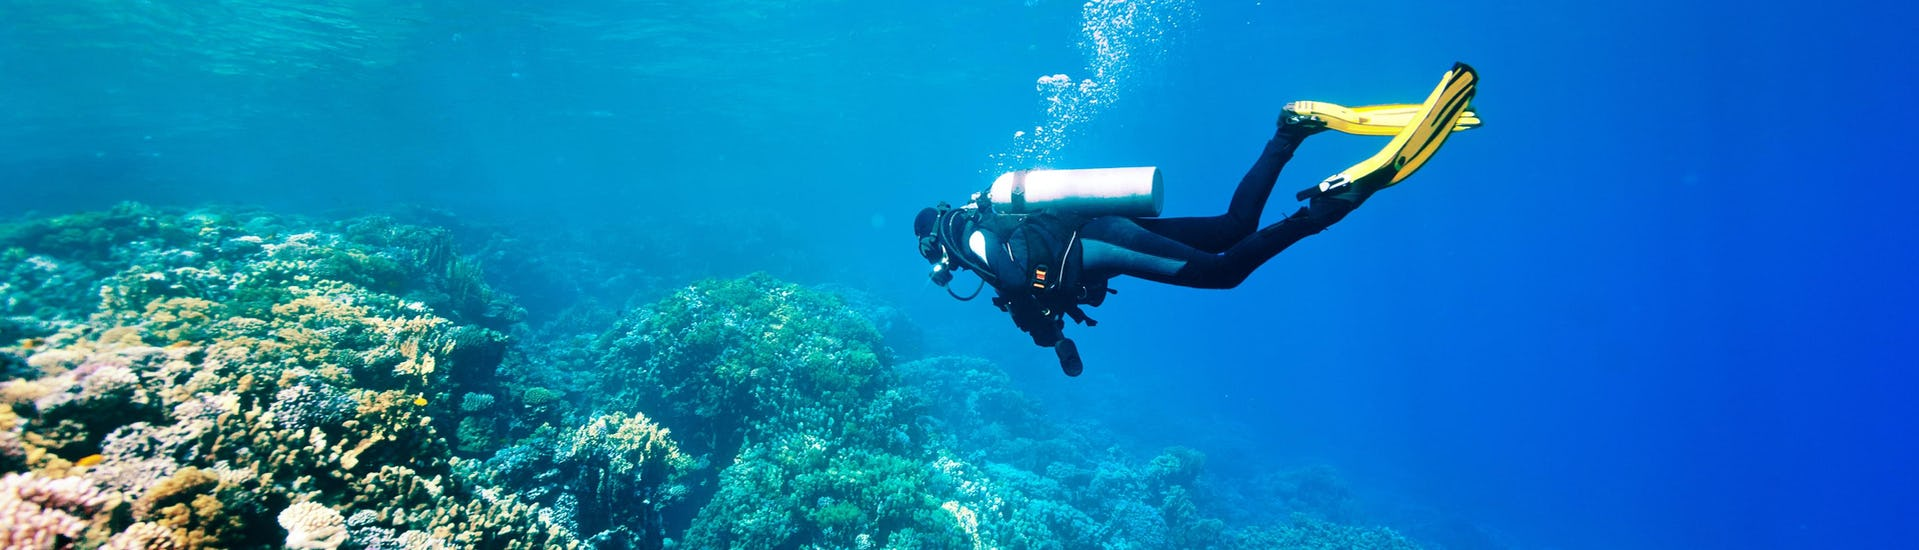 A scuba diver is exploring a reef while scuba diving in the scuba diving destination of Port Louis.